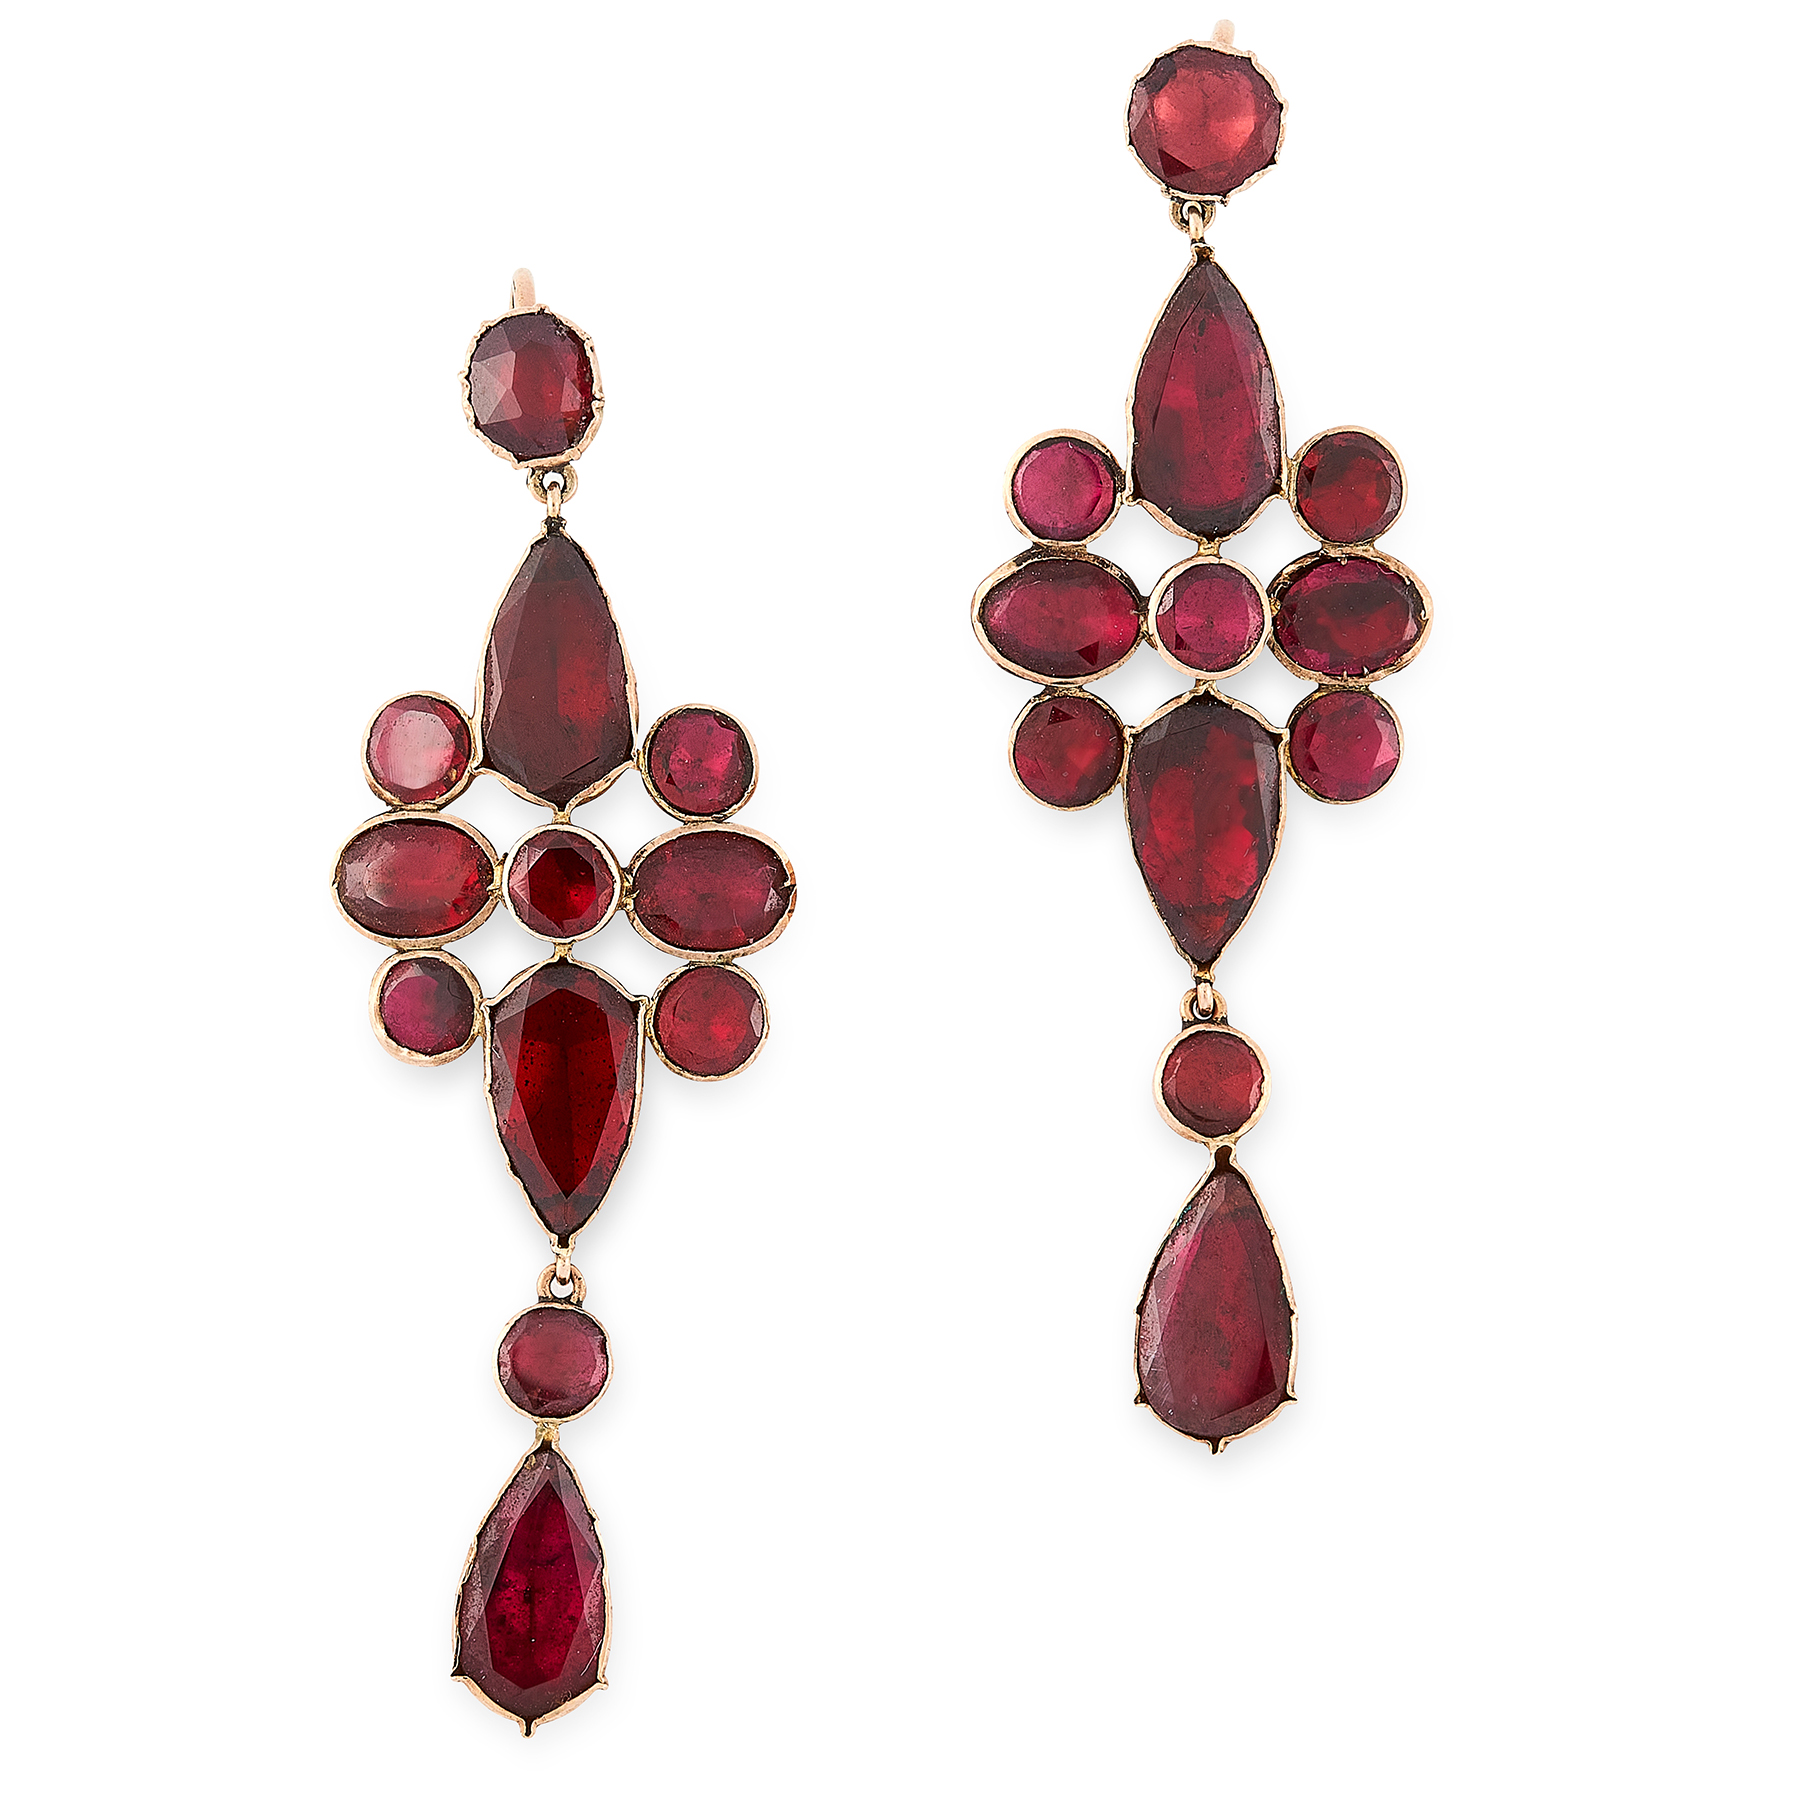 A PAIR OF ANTIQUE GARNET EARRINGS, 19TH CENTURY in yellow gold, the articulated body of each earring